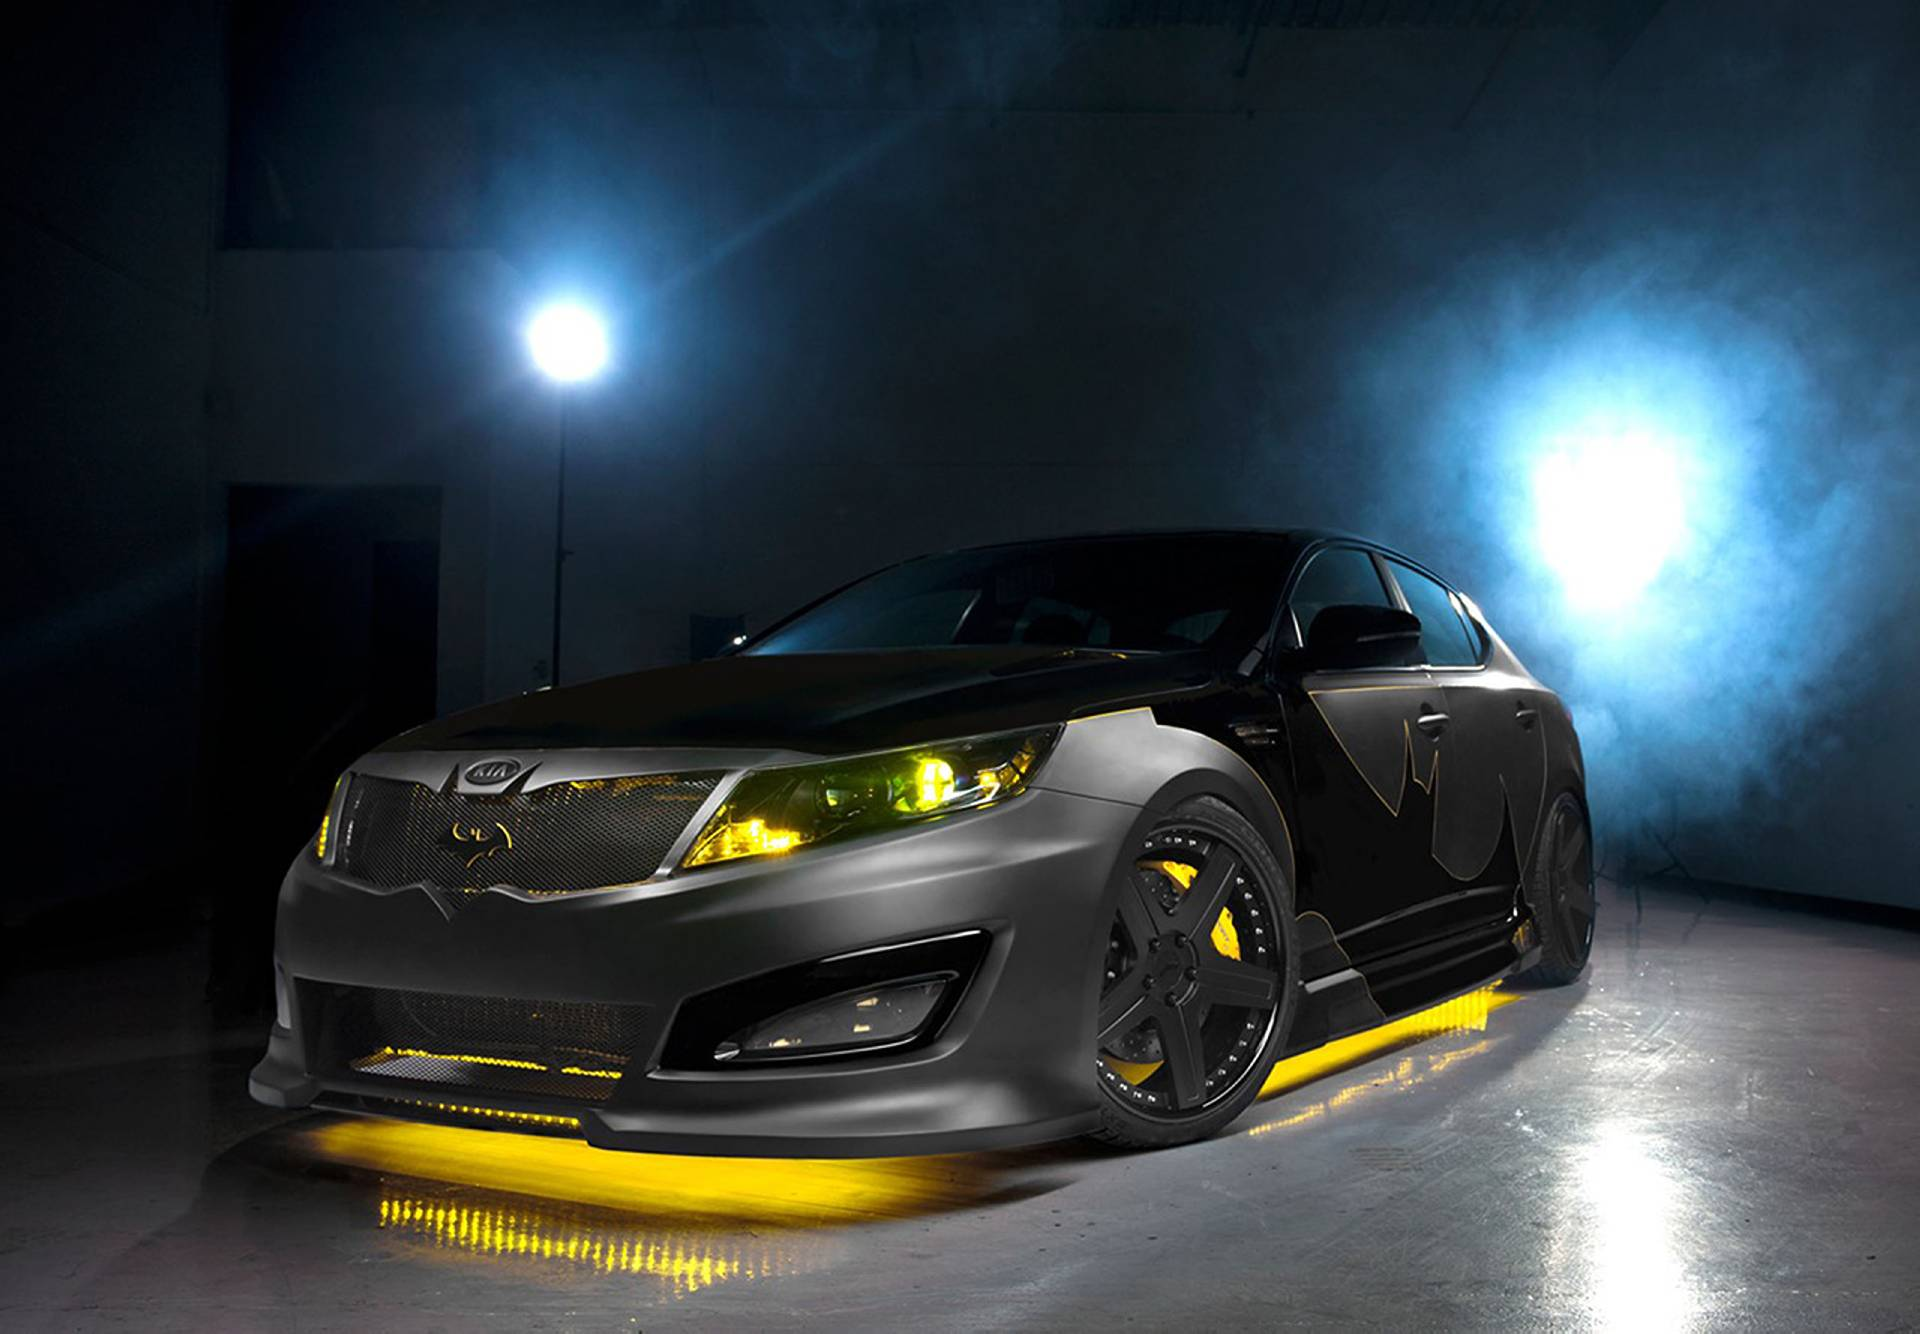 2013 Kia Batman Inspired Optima Concept News And Information Research And History